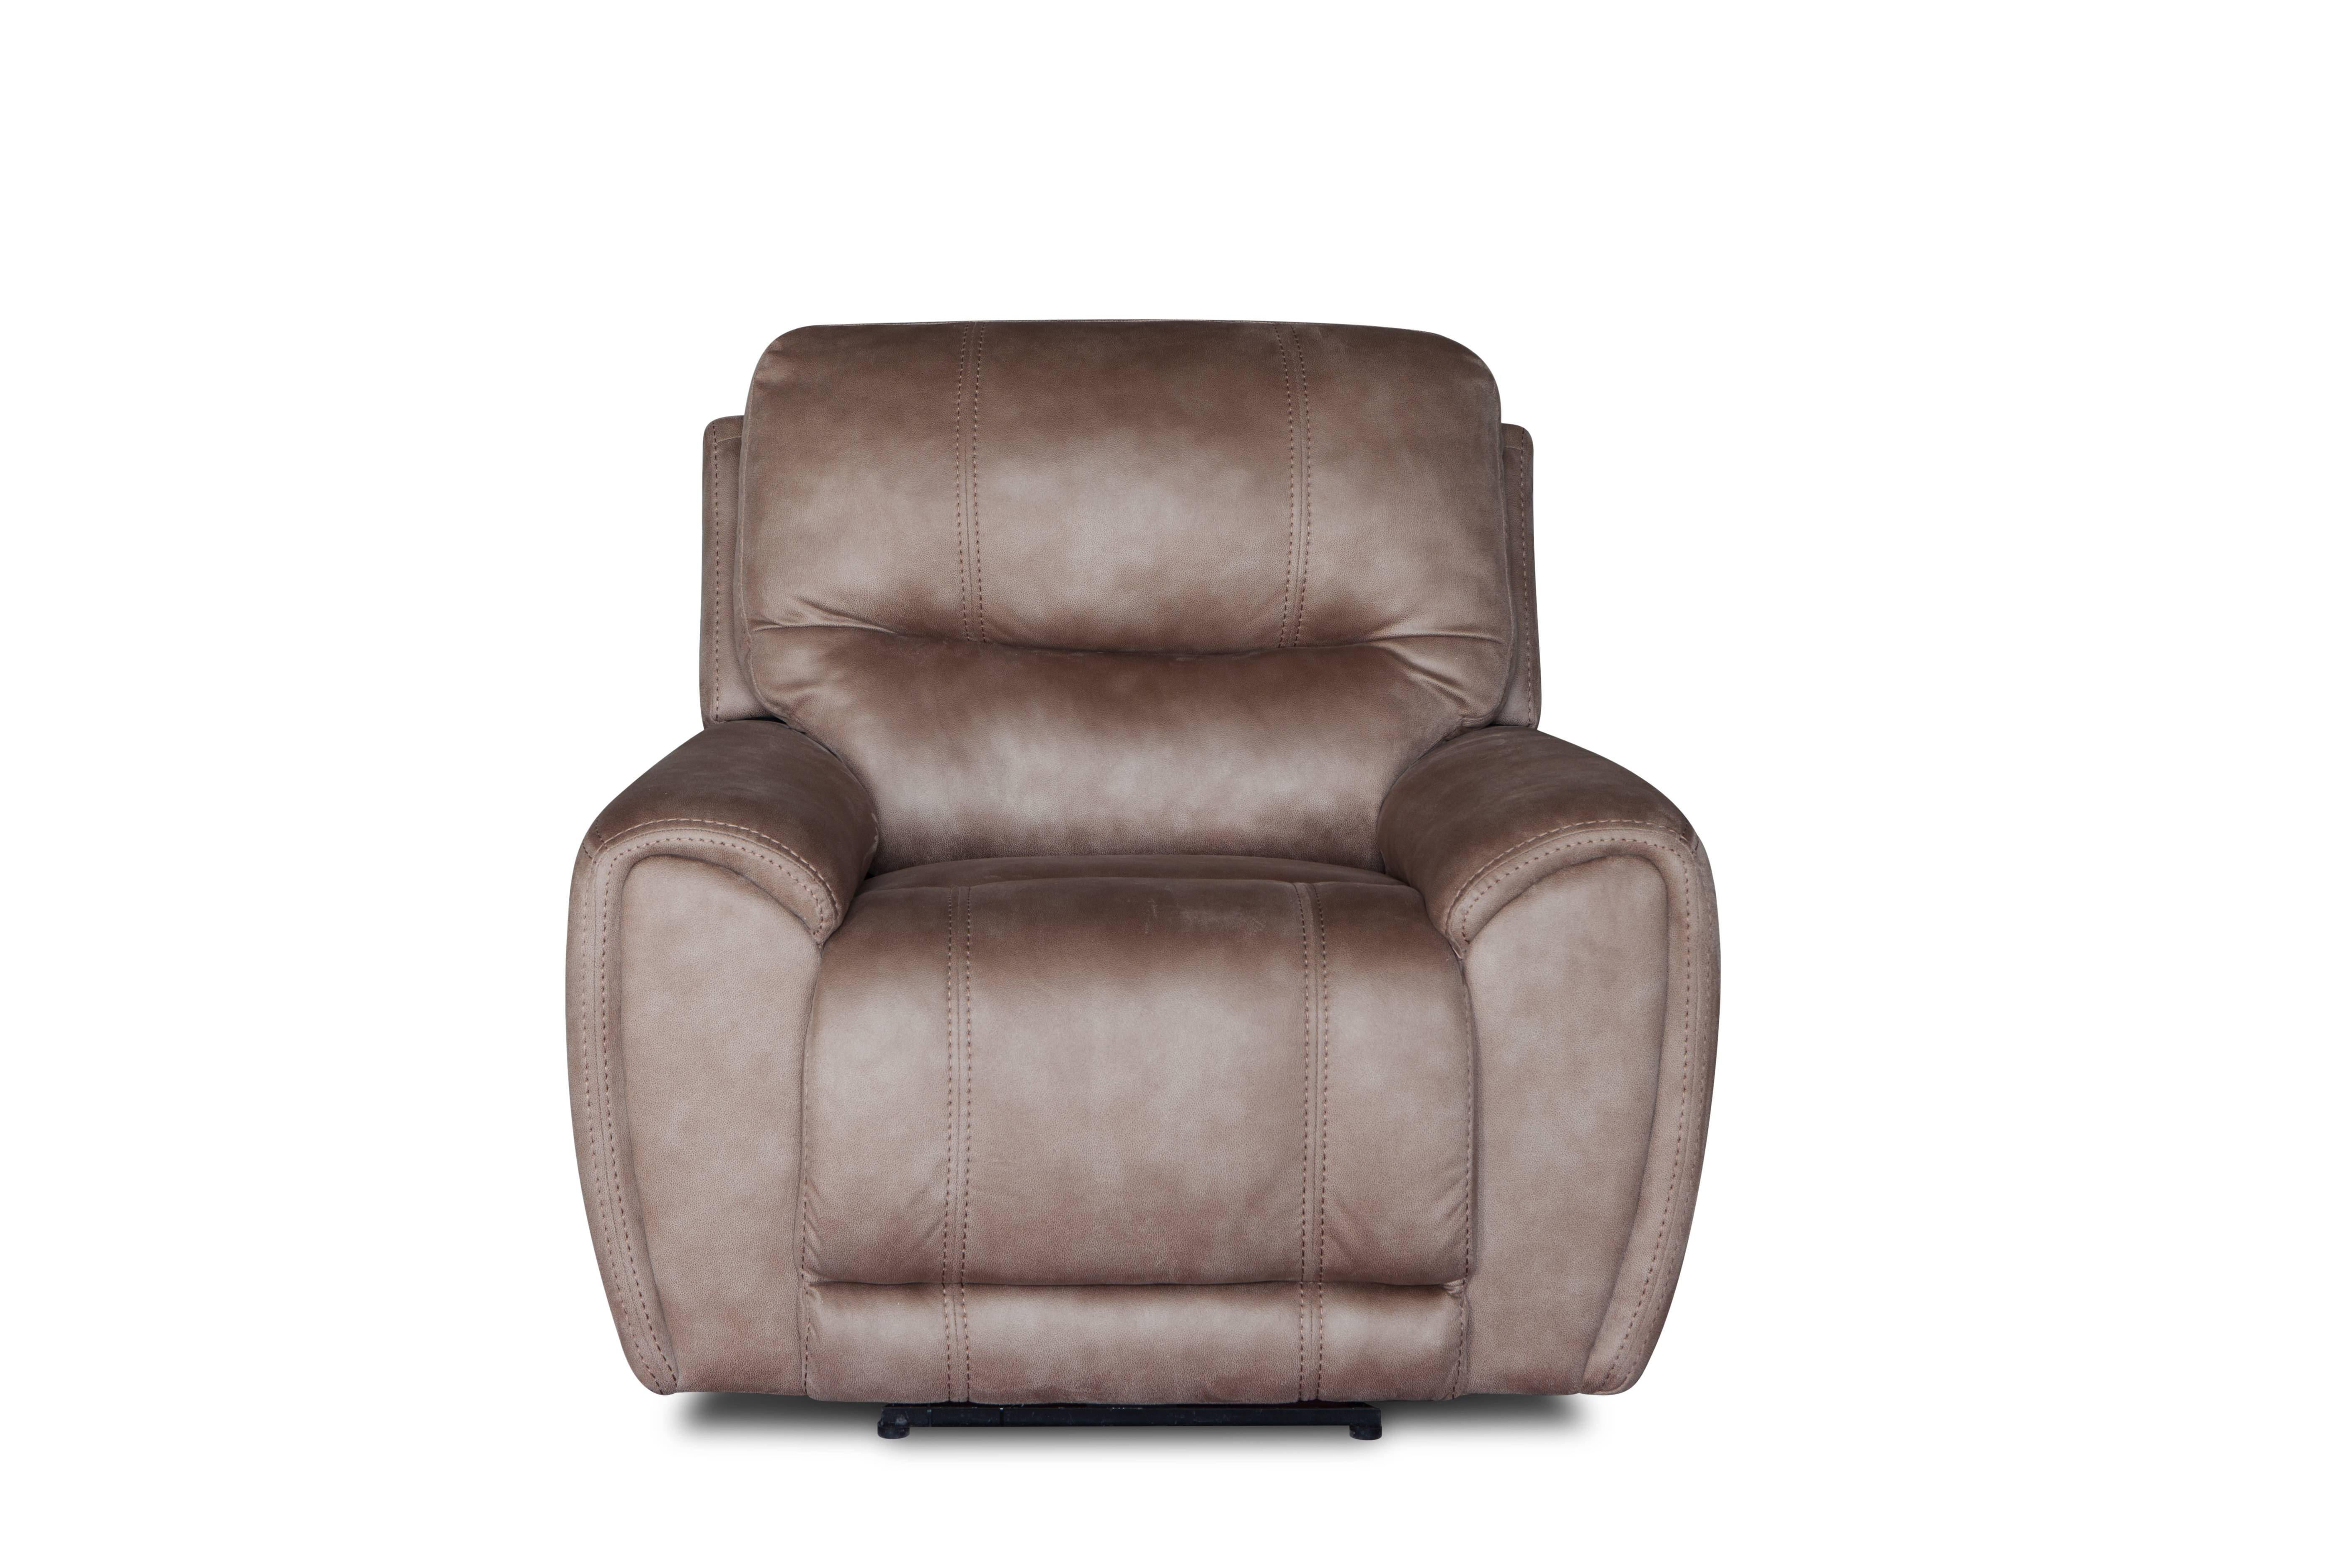 Factory Price For Swivel recliner sofa -